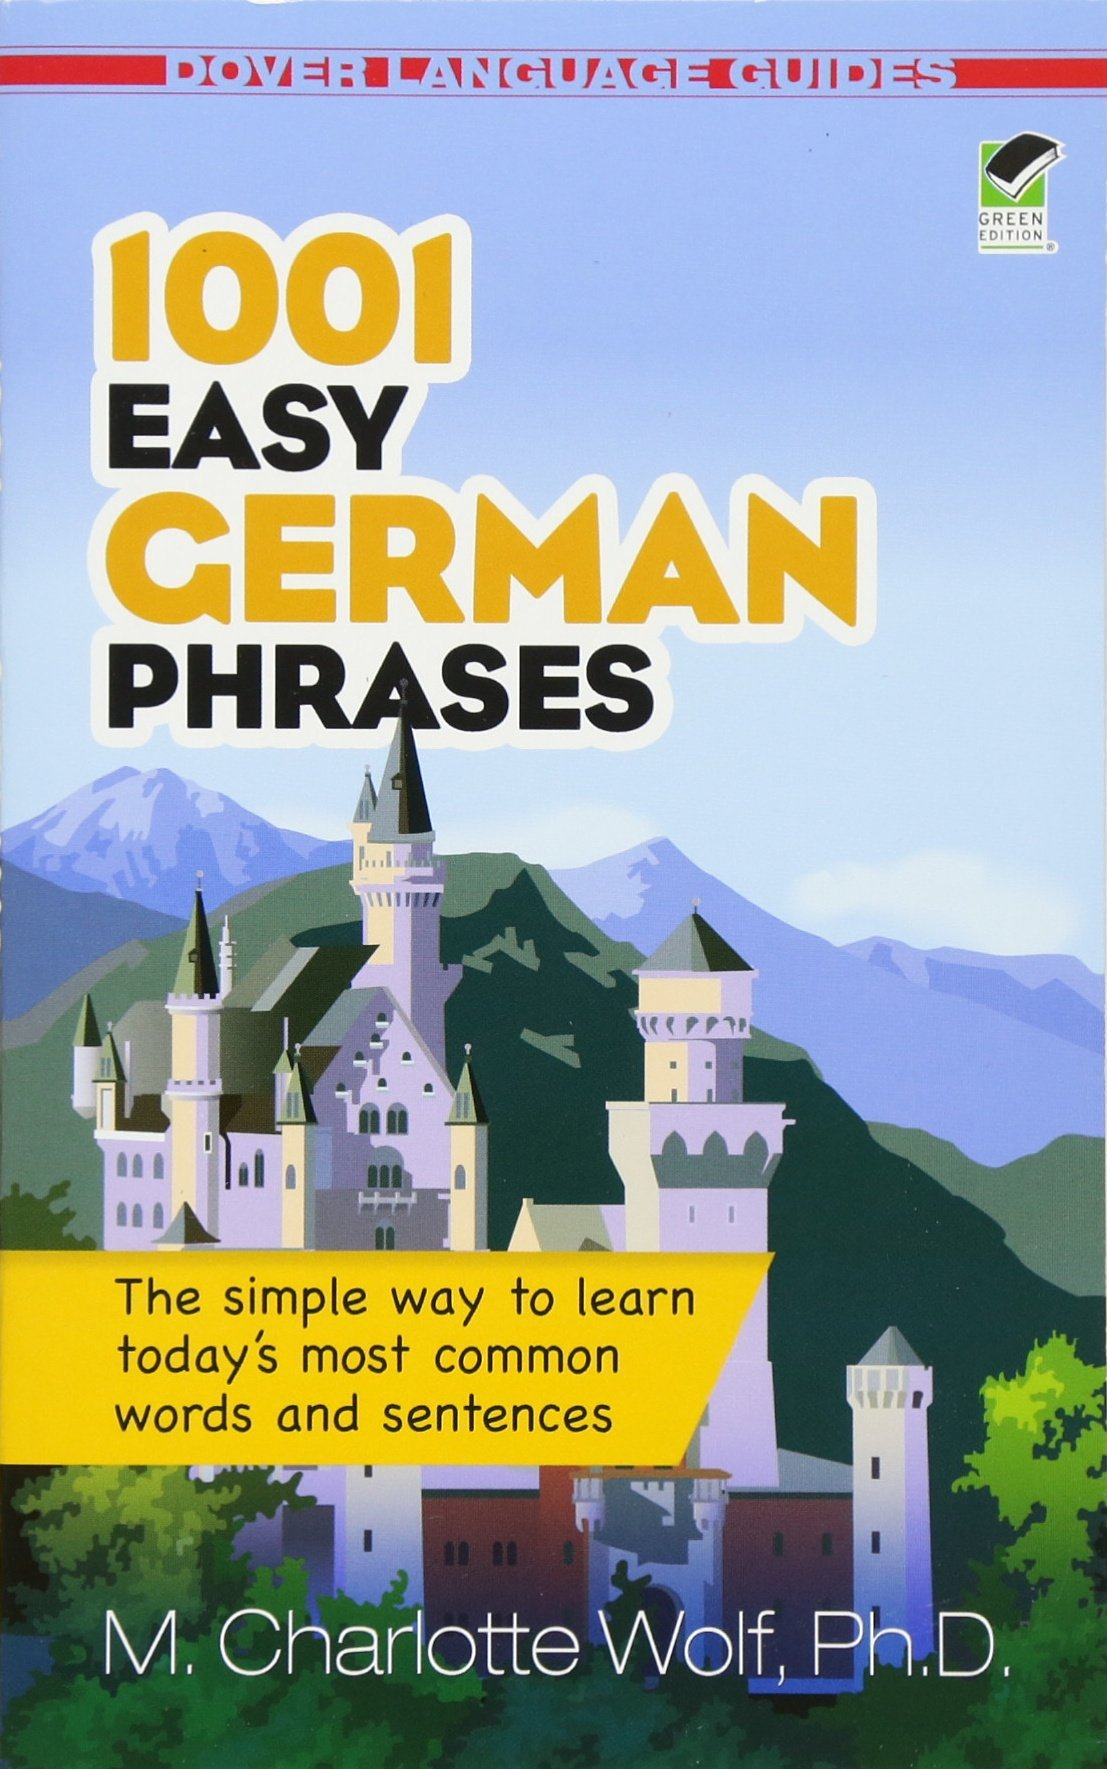 1001 Easy German Phrases M Charlotte Wolf 9780486476308 Amazon